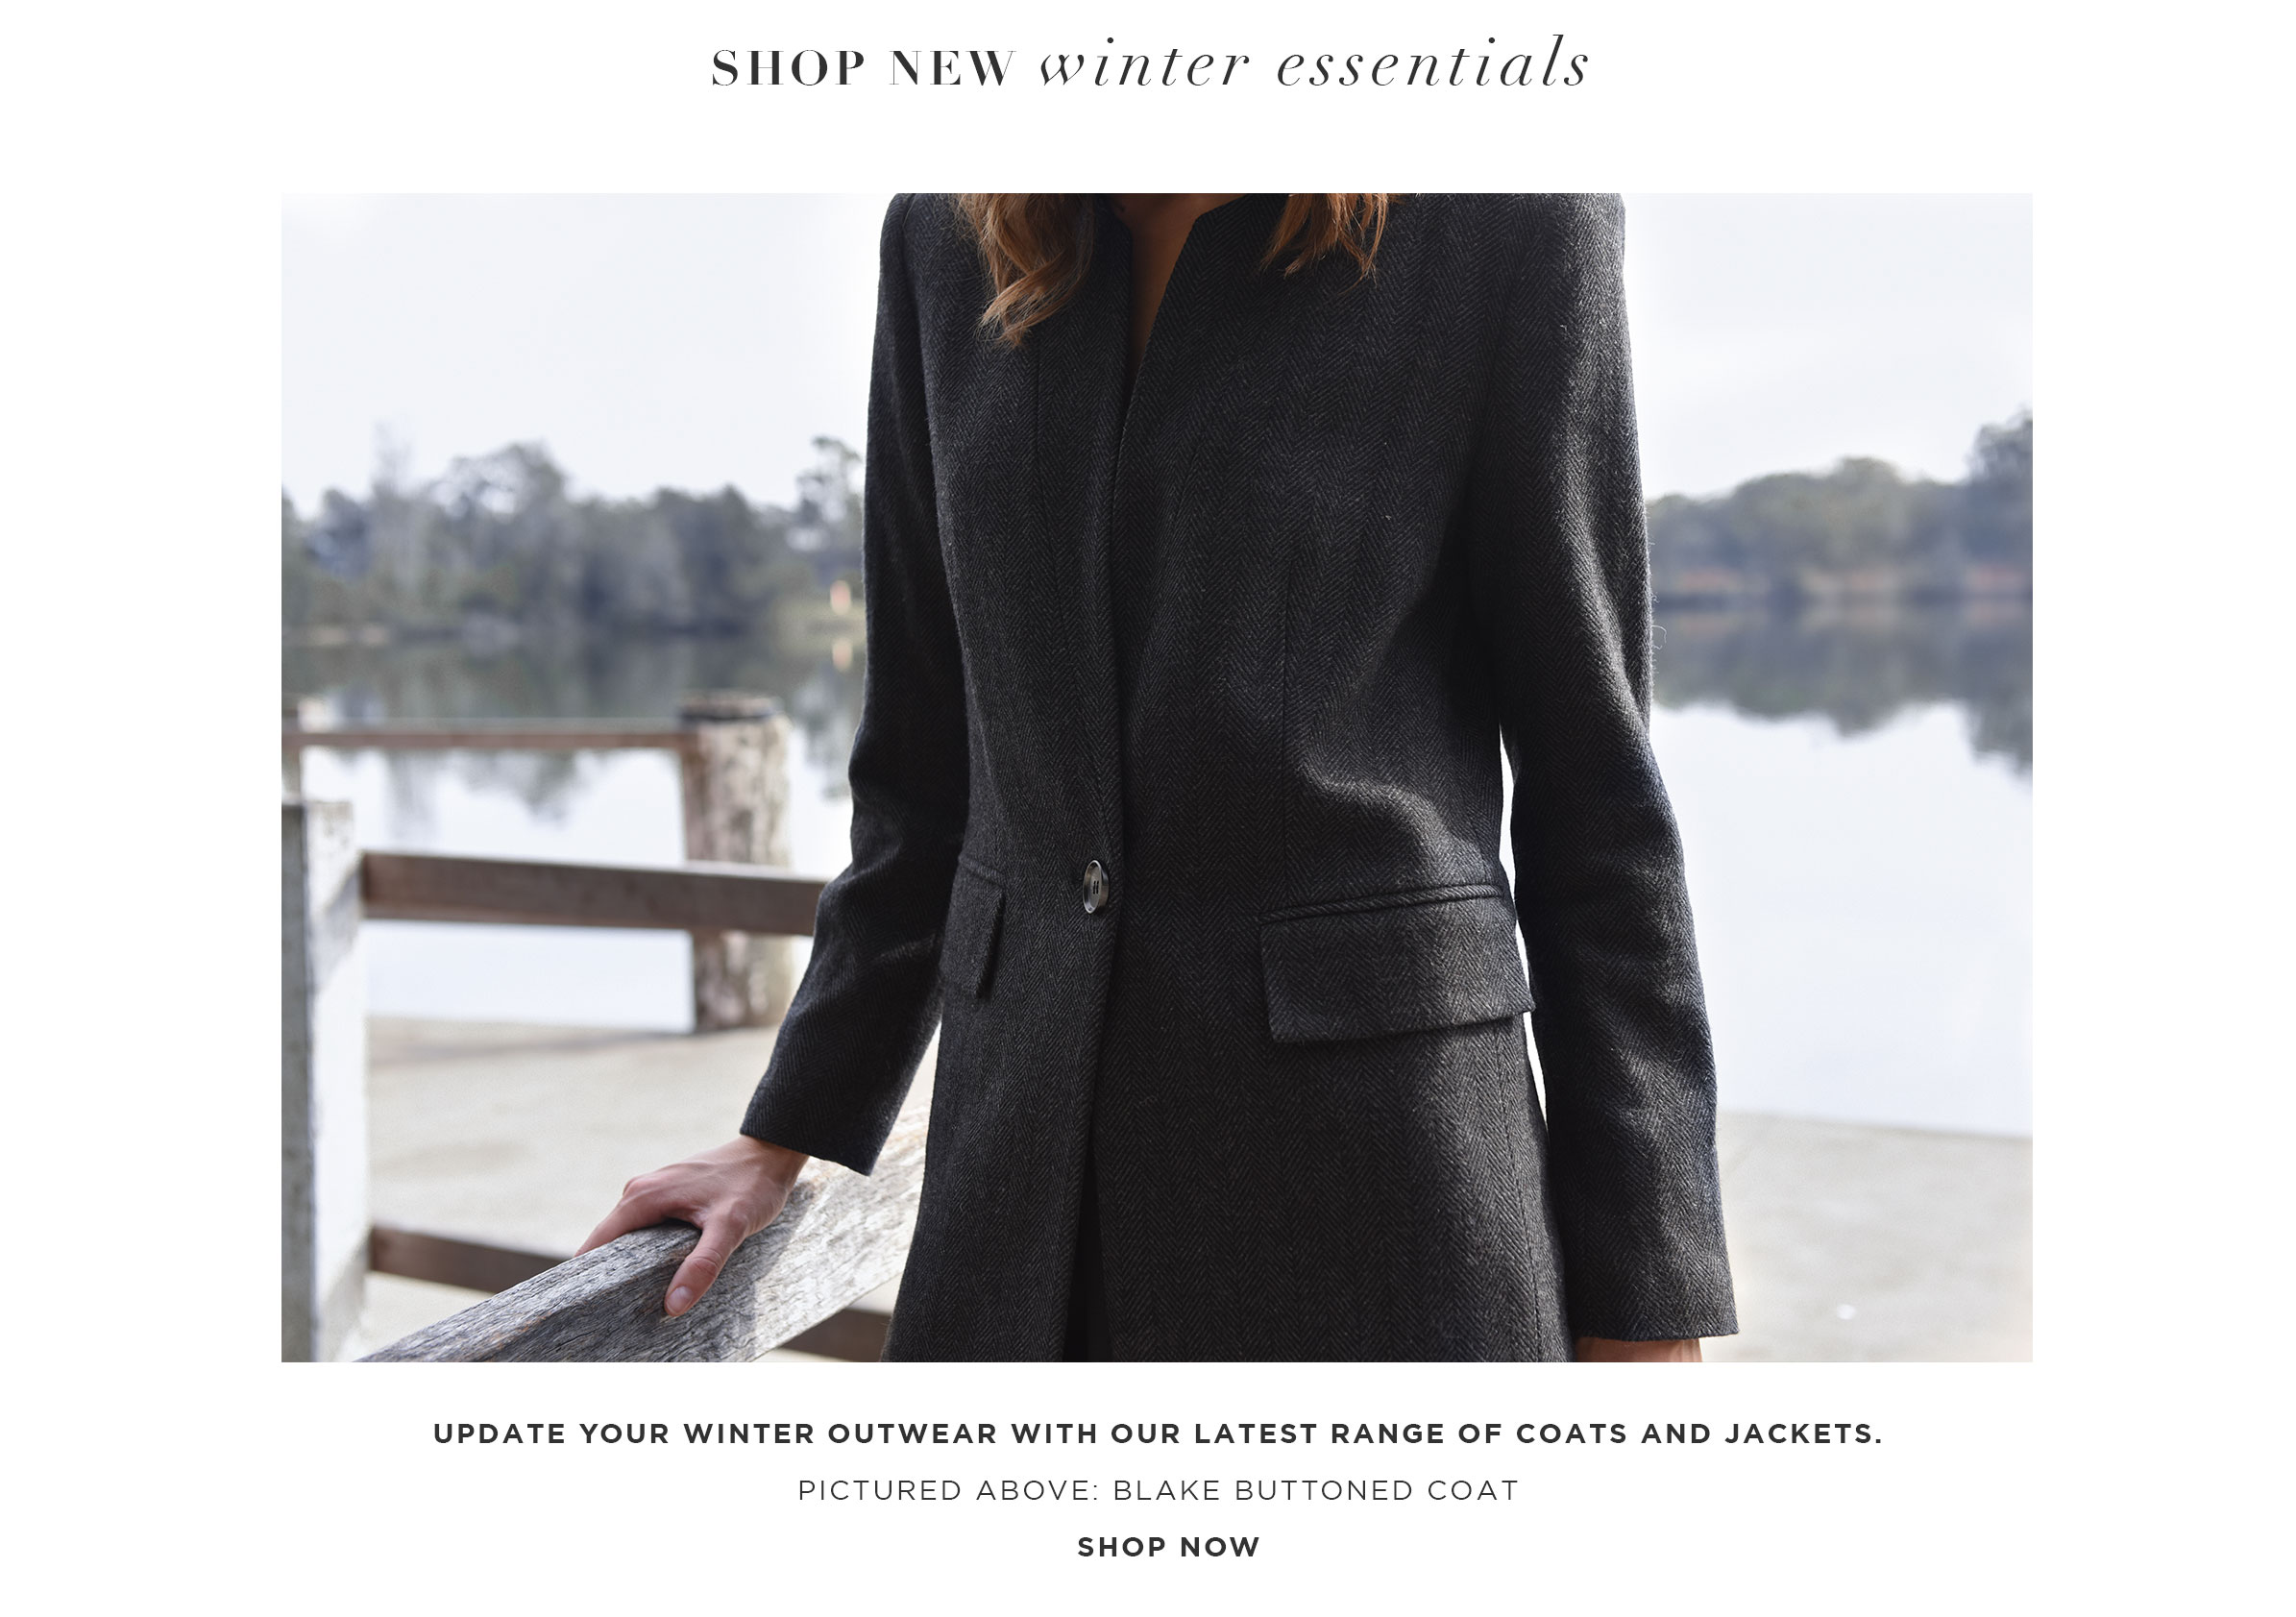 Update your winter outwear with our latest range of coats and jackets